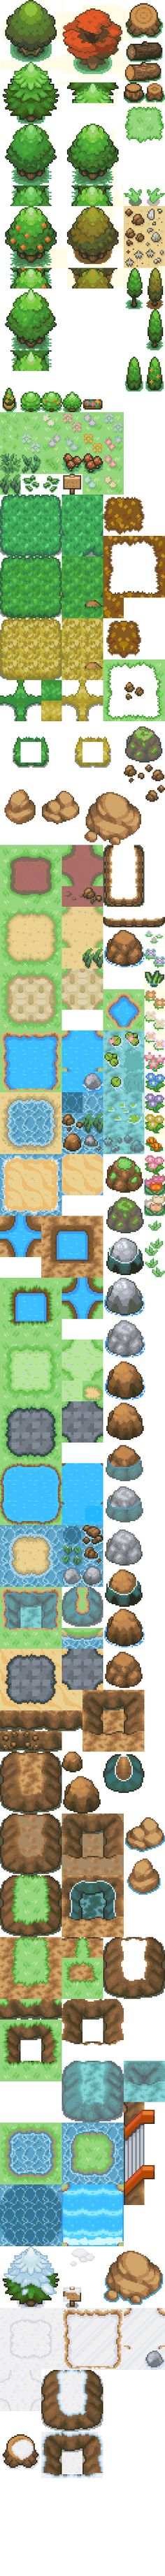 tileset pokemon RPGMAKER XP by kutoal.deviantart.com on @deviantART